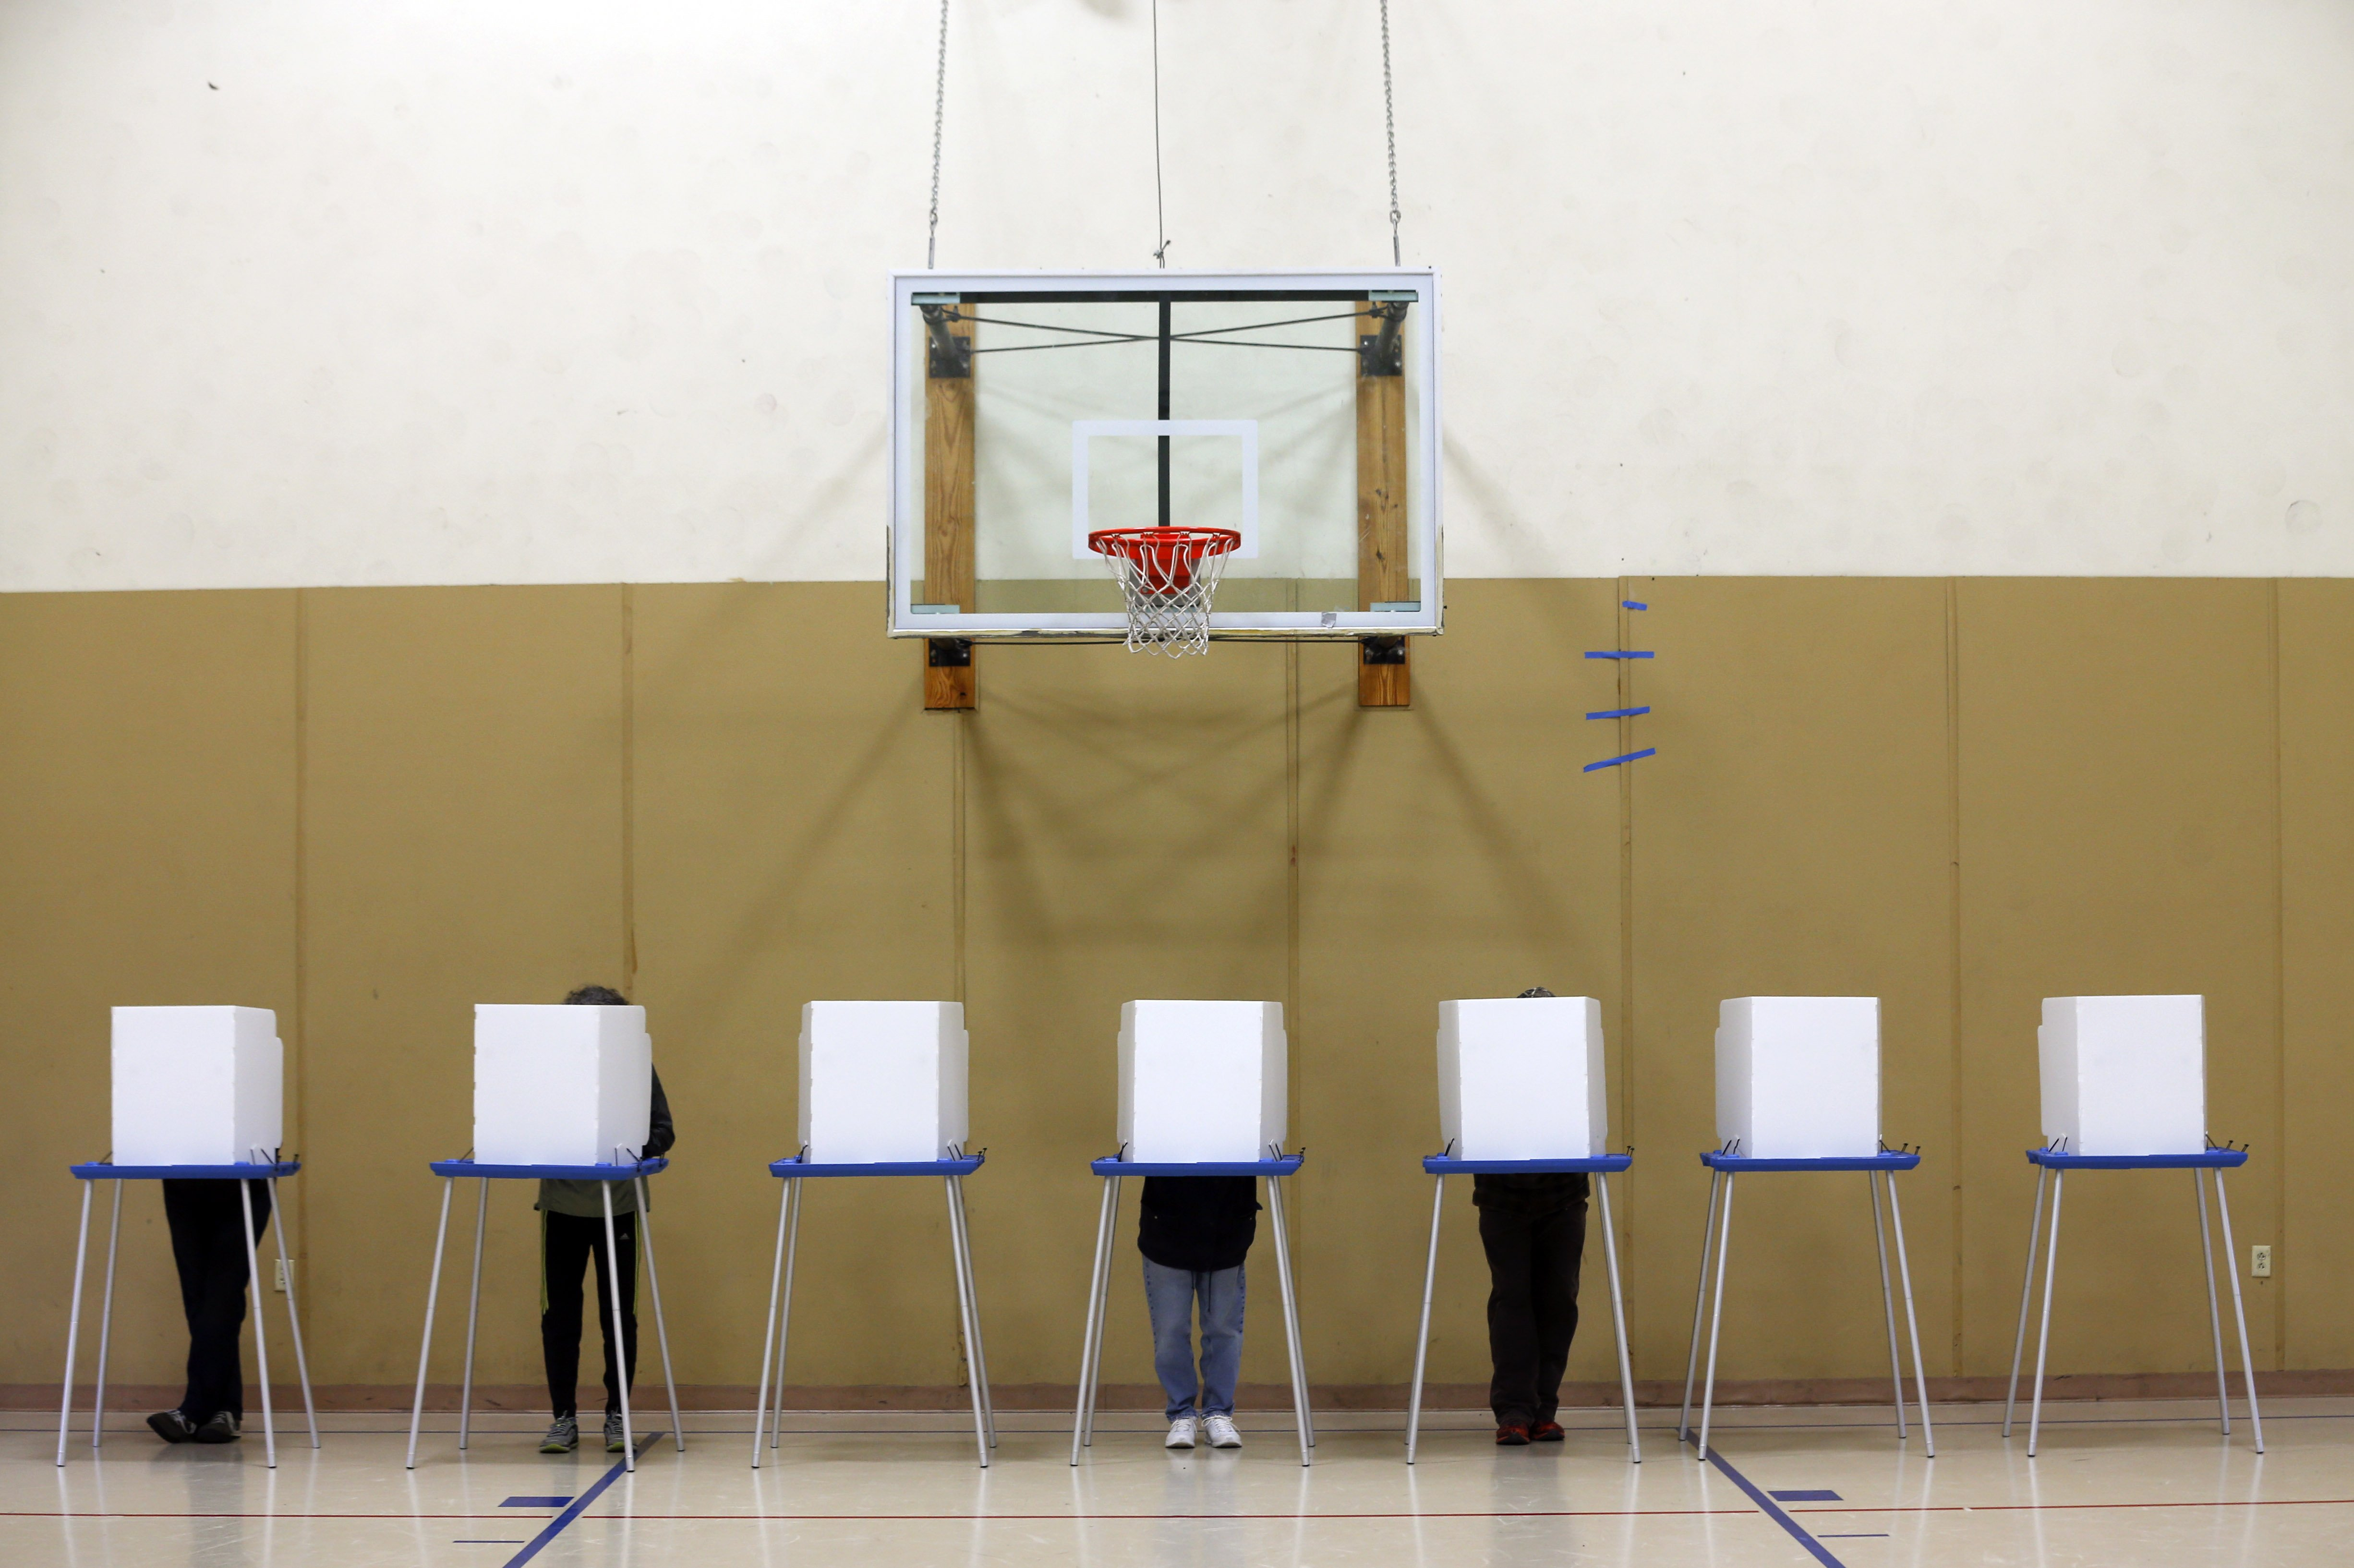 Voters fill out their ballots in a gym on election day at St. Sophia Greek Orthodox Church on Nov. 4, 2014, in Albany, N.Y.